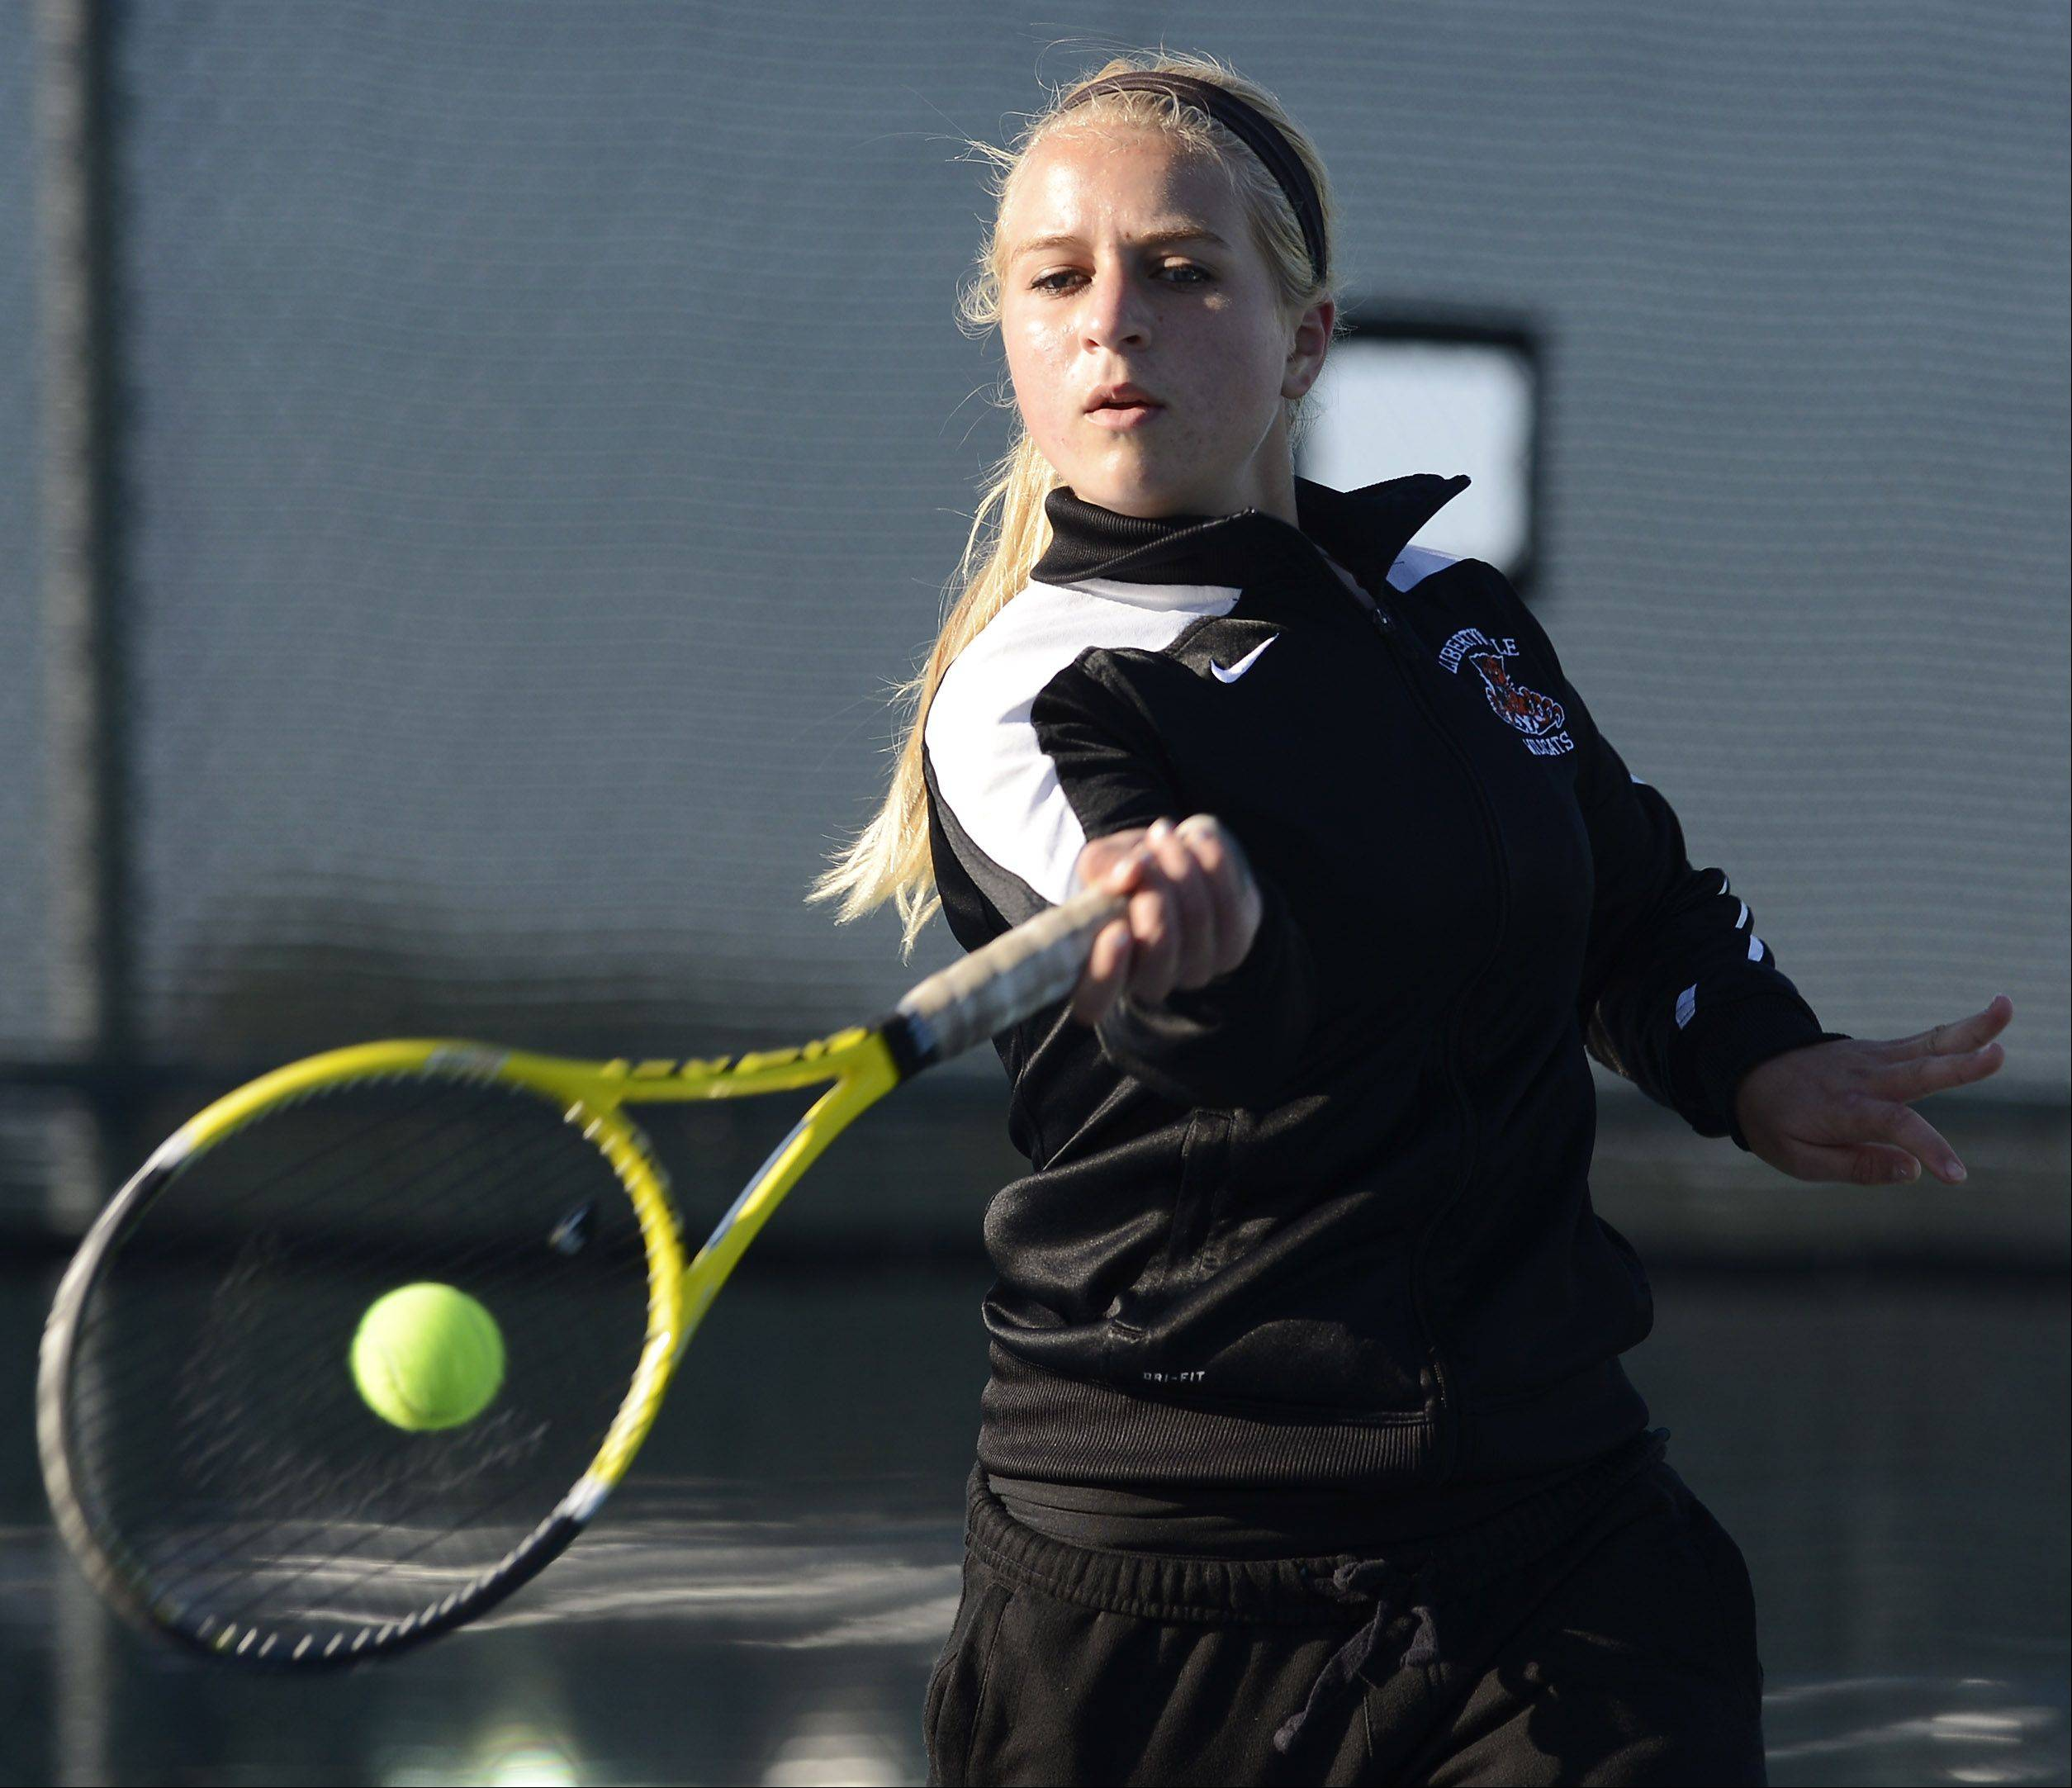 Libertyville's Aleksandra Grabowski returns a volley during the girls tennis state tournament at Prospect High School on Thursday.